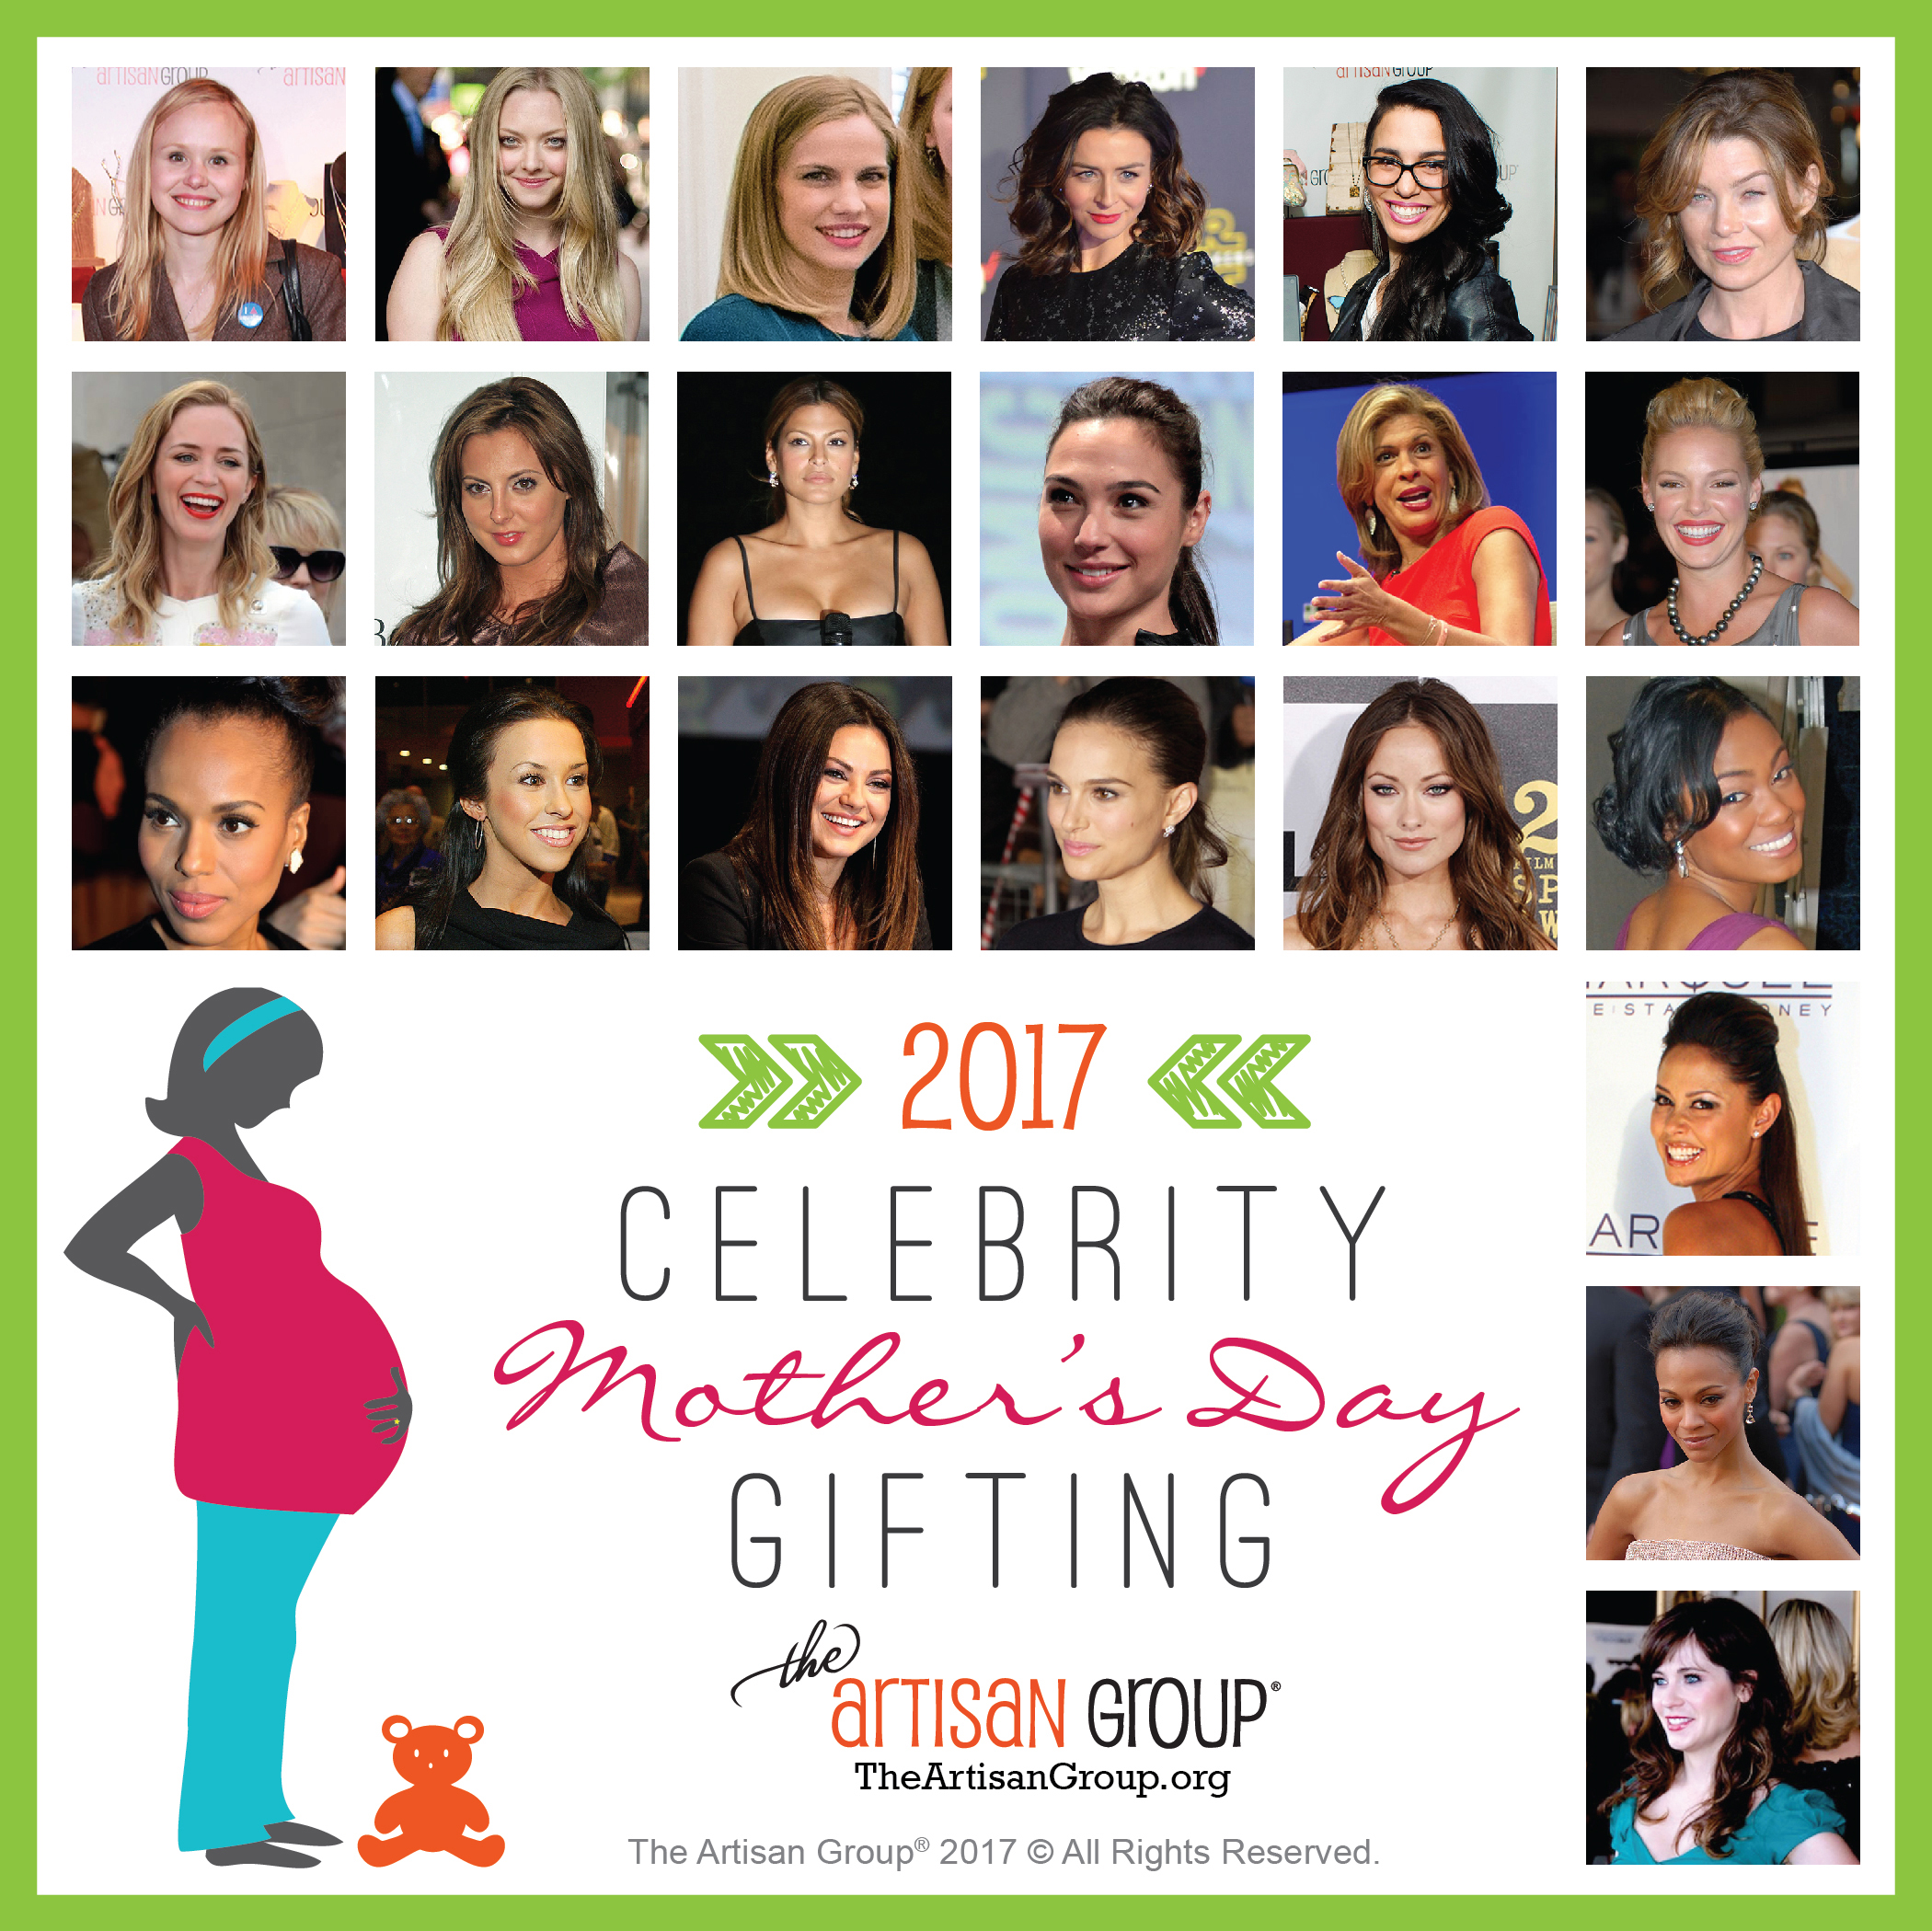 Celebrity List for The Artisan Group Mother's Day 2017 Gifting